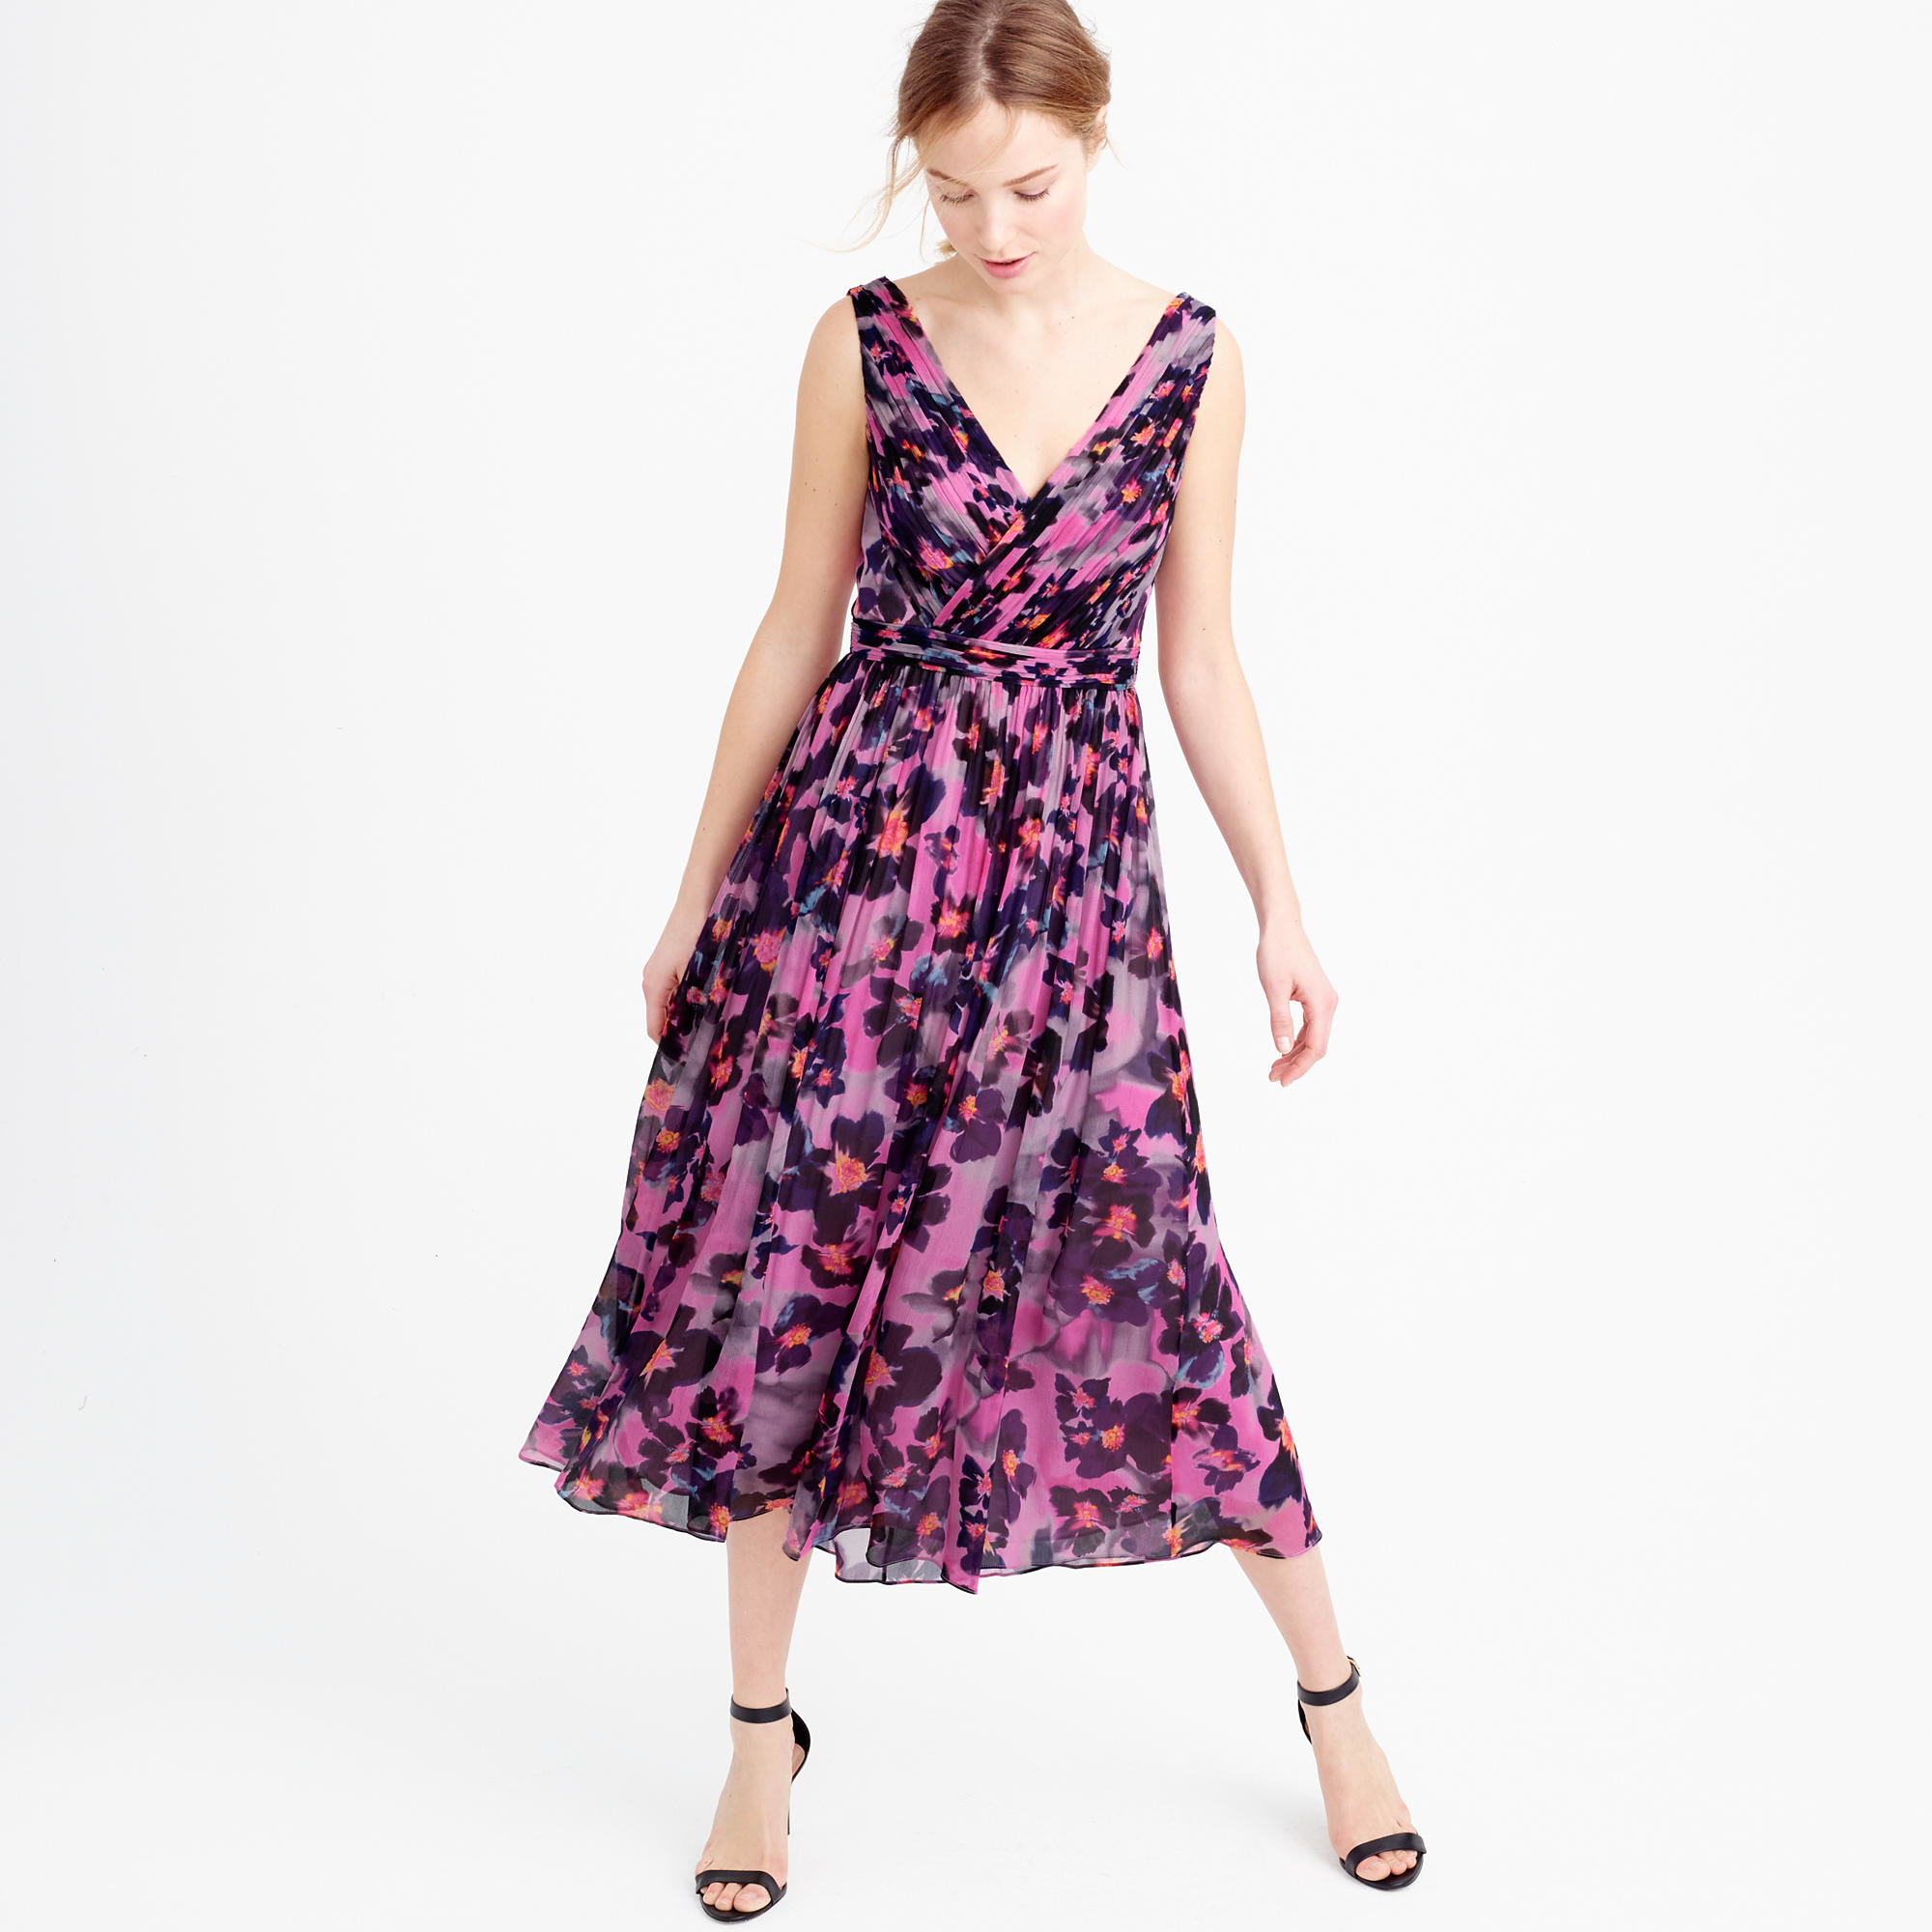 Lyst - J.Crew Collection Silk Chiffon Dress In Watercolor Floral 06e92736c